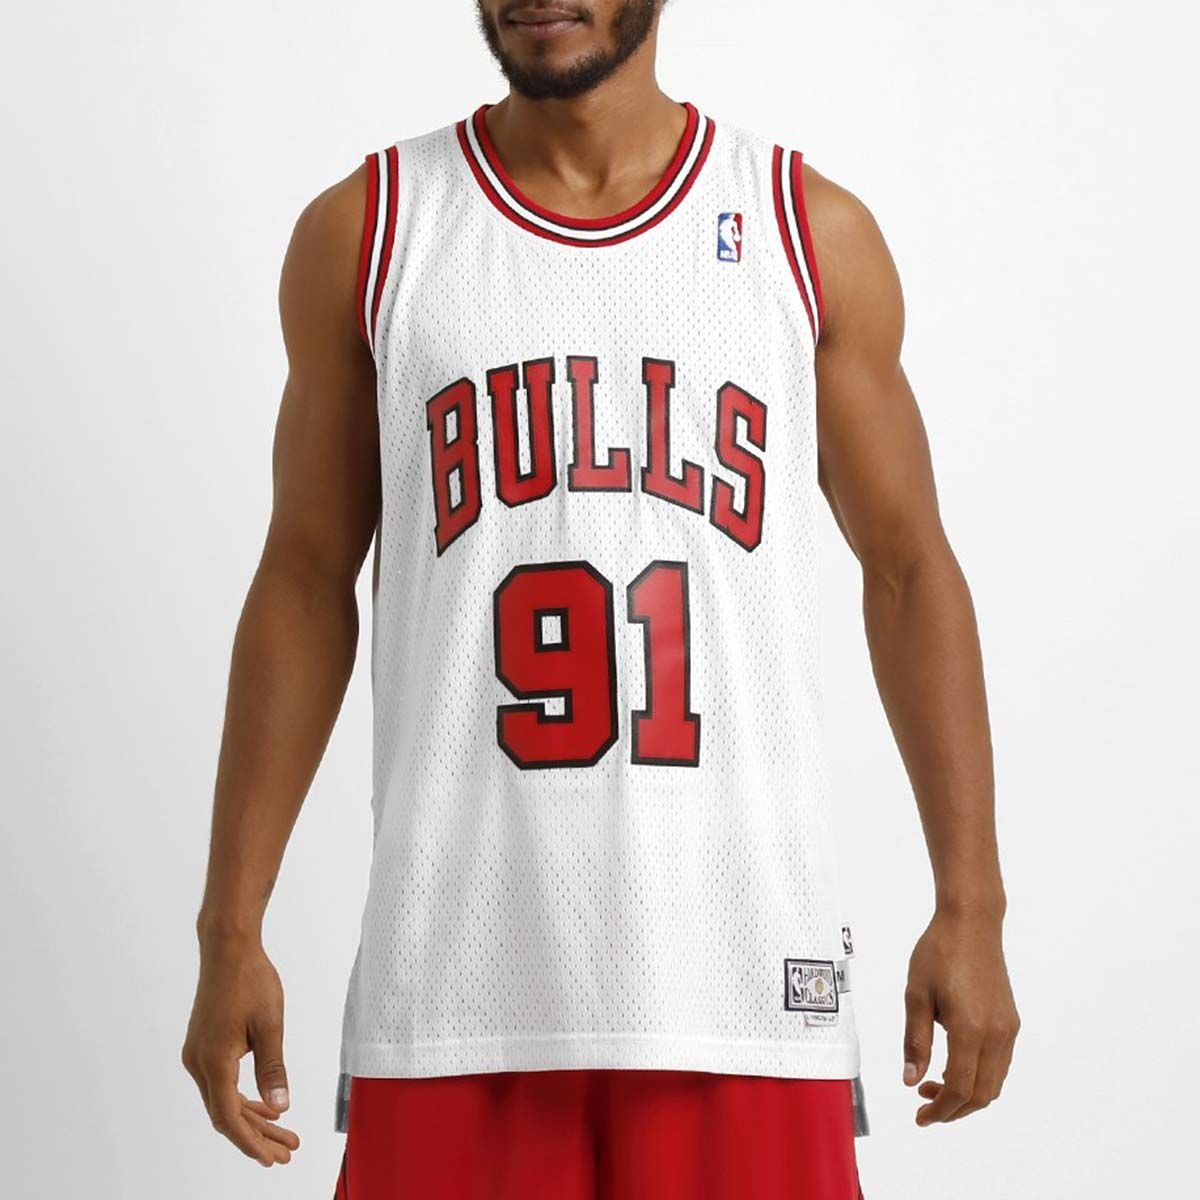 regata adidas nba retired chicago bulls  91 dennis rodman+nf. Carregando  zoom. eef772be07c